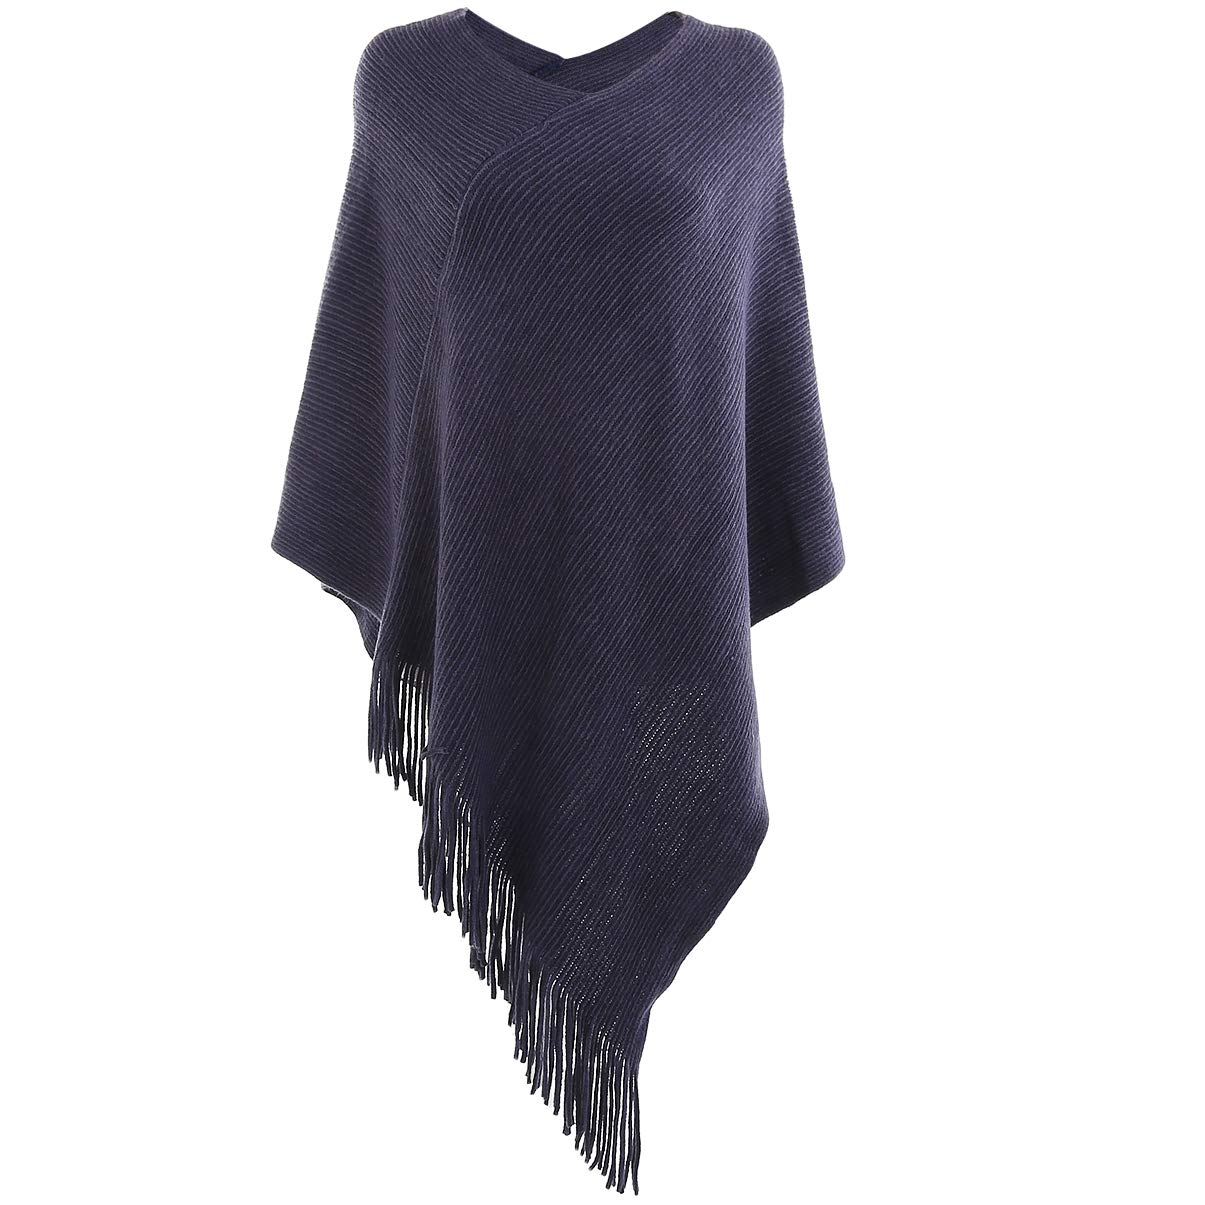 VBG VBIGER Women Knitted Poncho Warm Shawl Wrap Cape Fringed Scarf Pullover Sweater